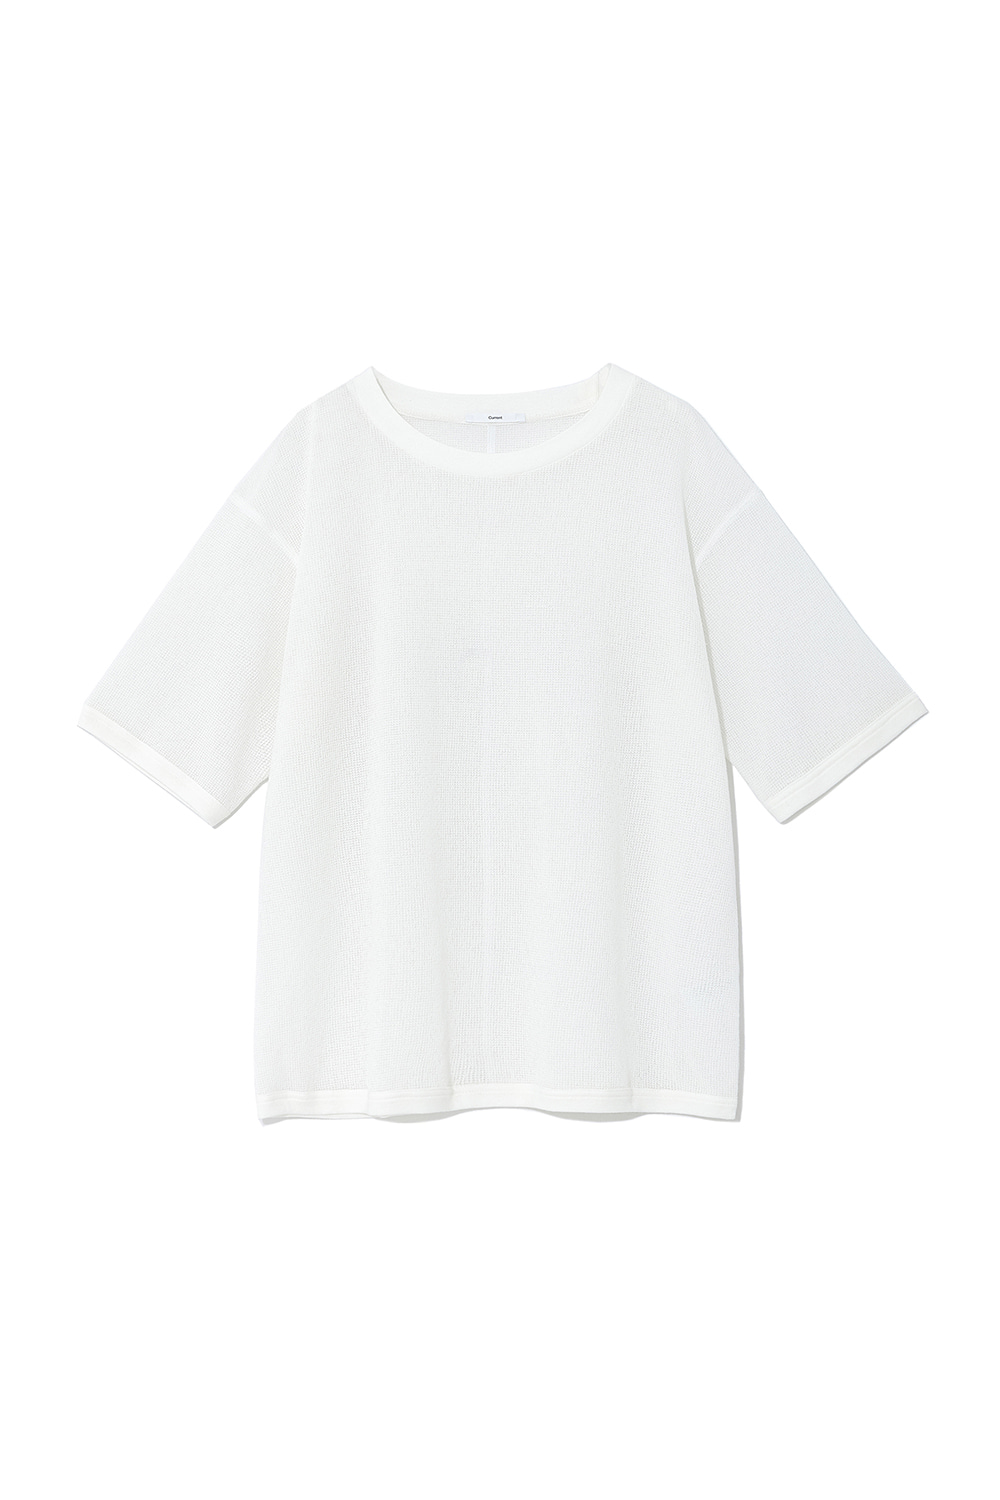 Oversized Mesh Tee Men [White]